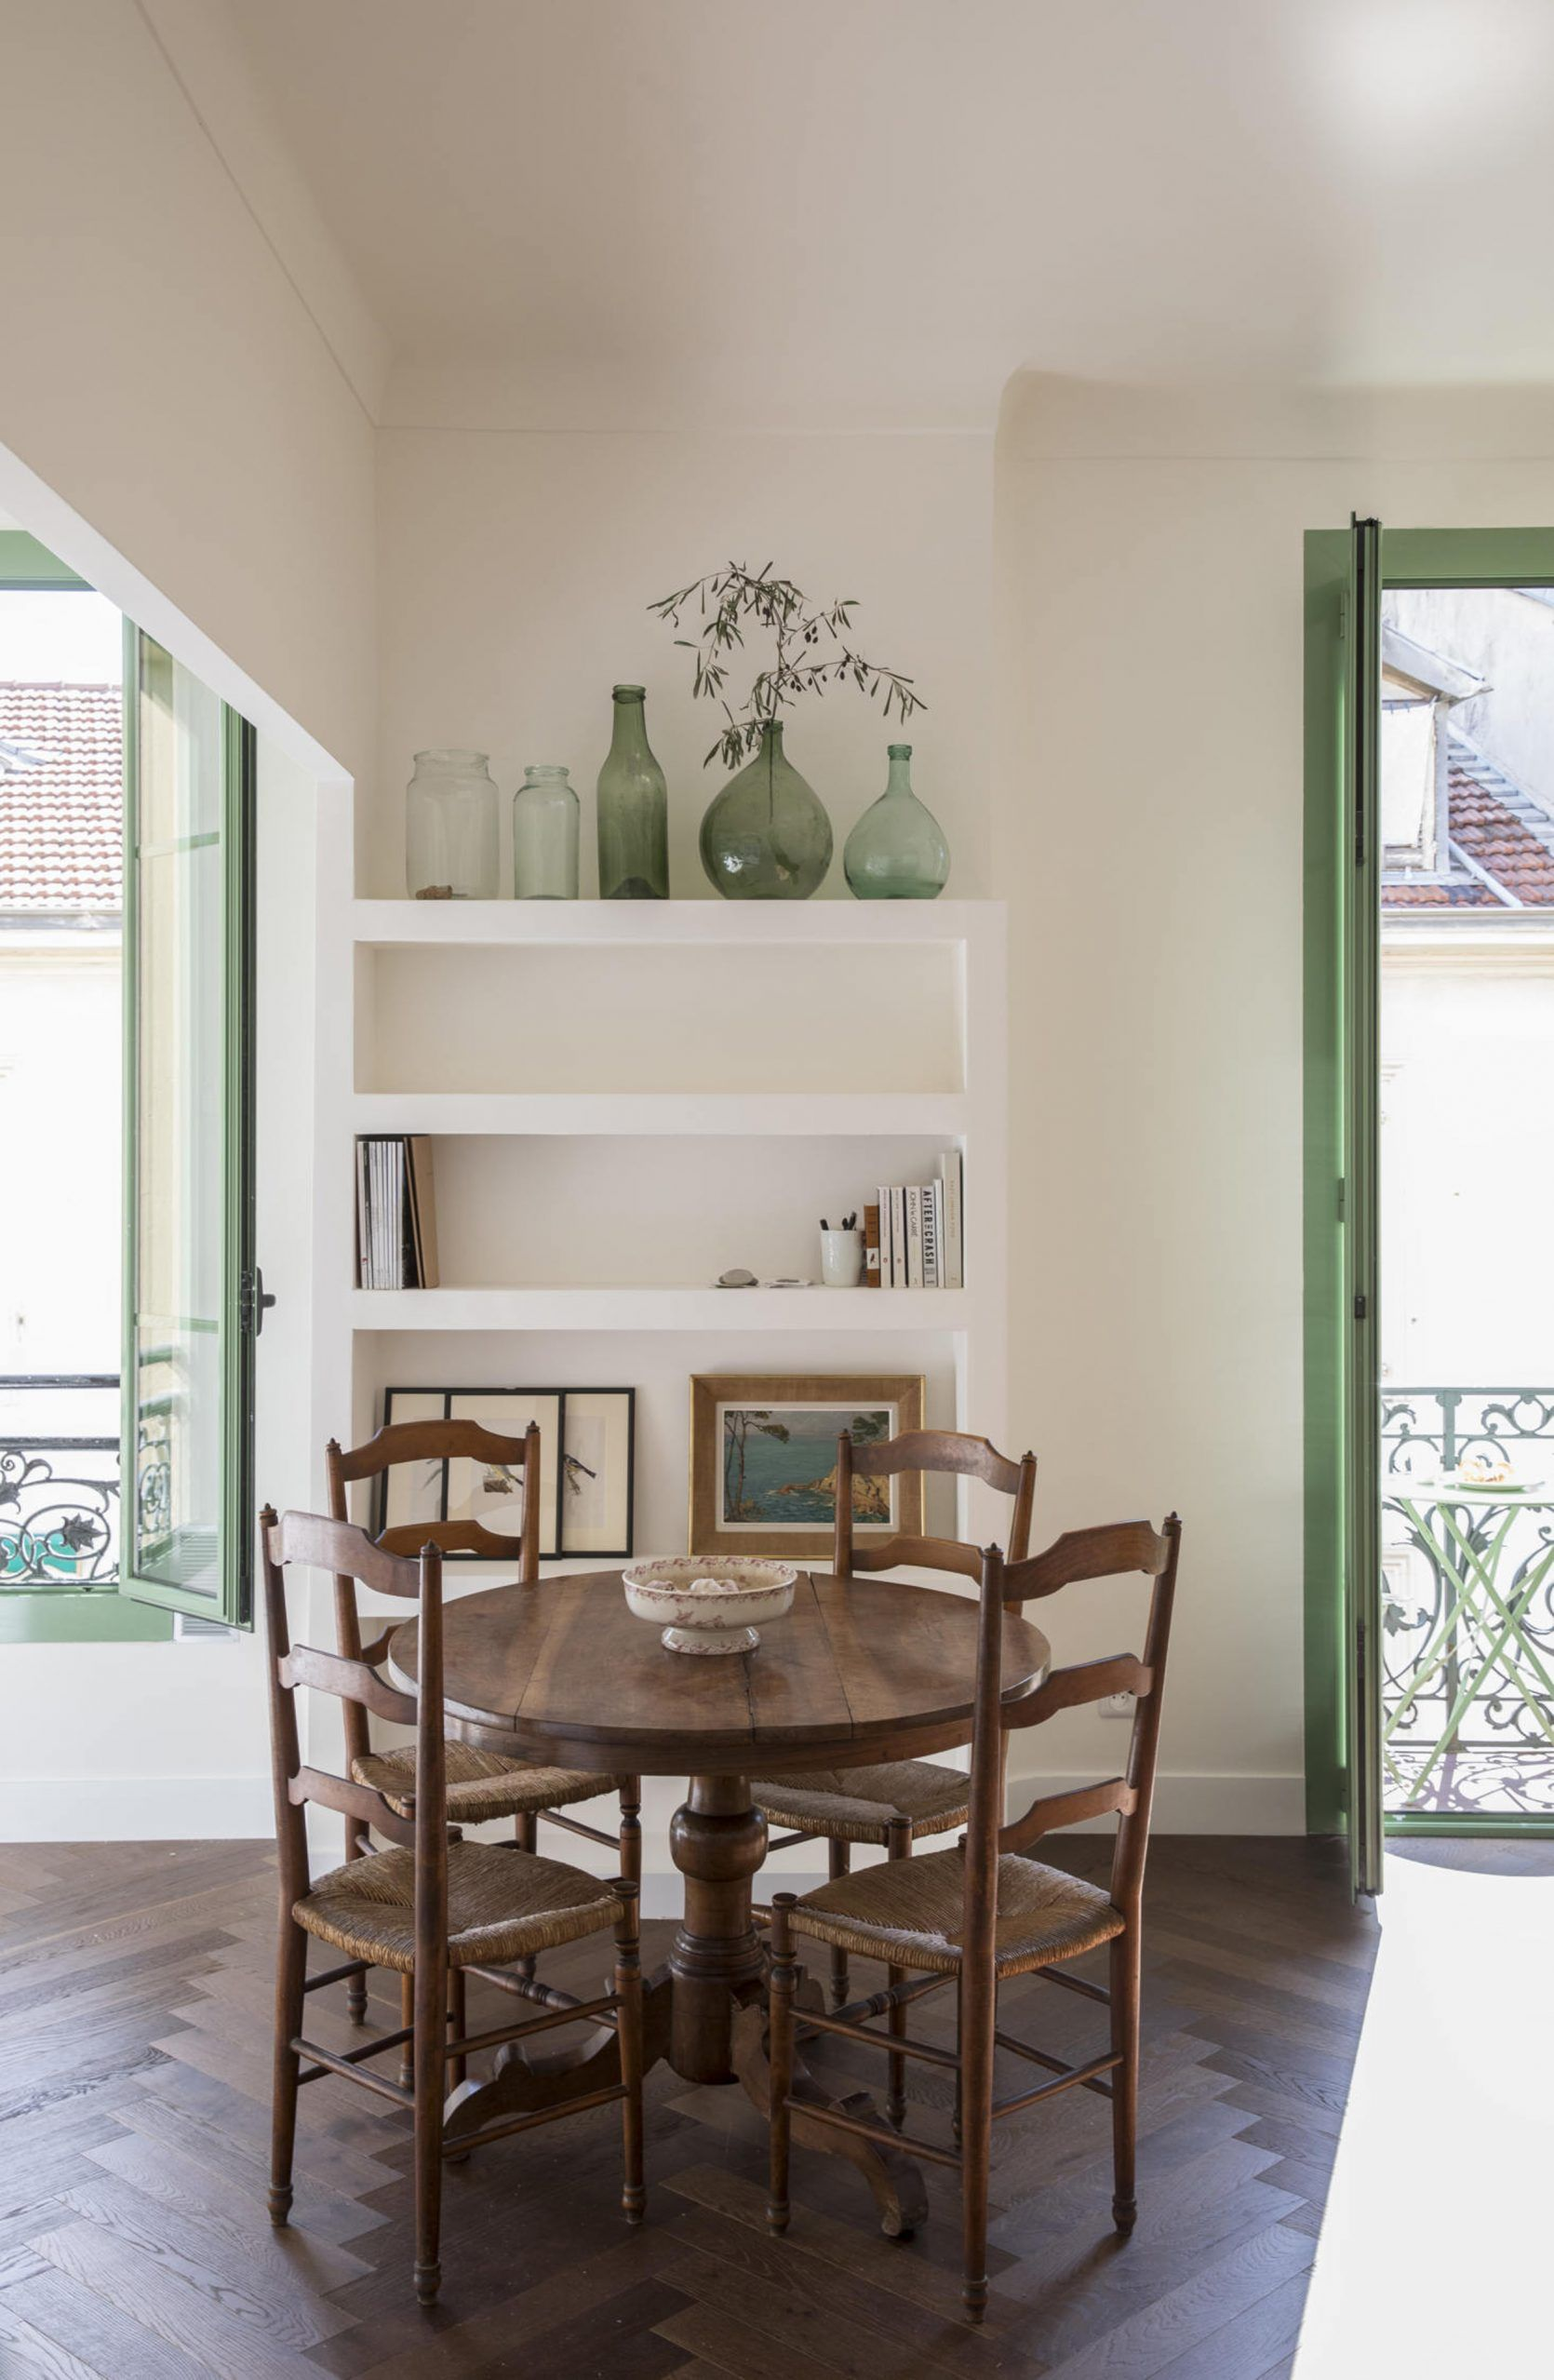 2019 Paint Color Trends Emily Henderson Dining Room Paint Colors Dining Room Design Dining Room Colors